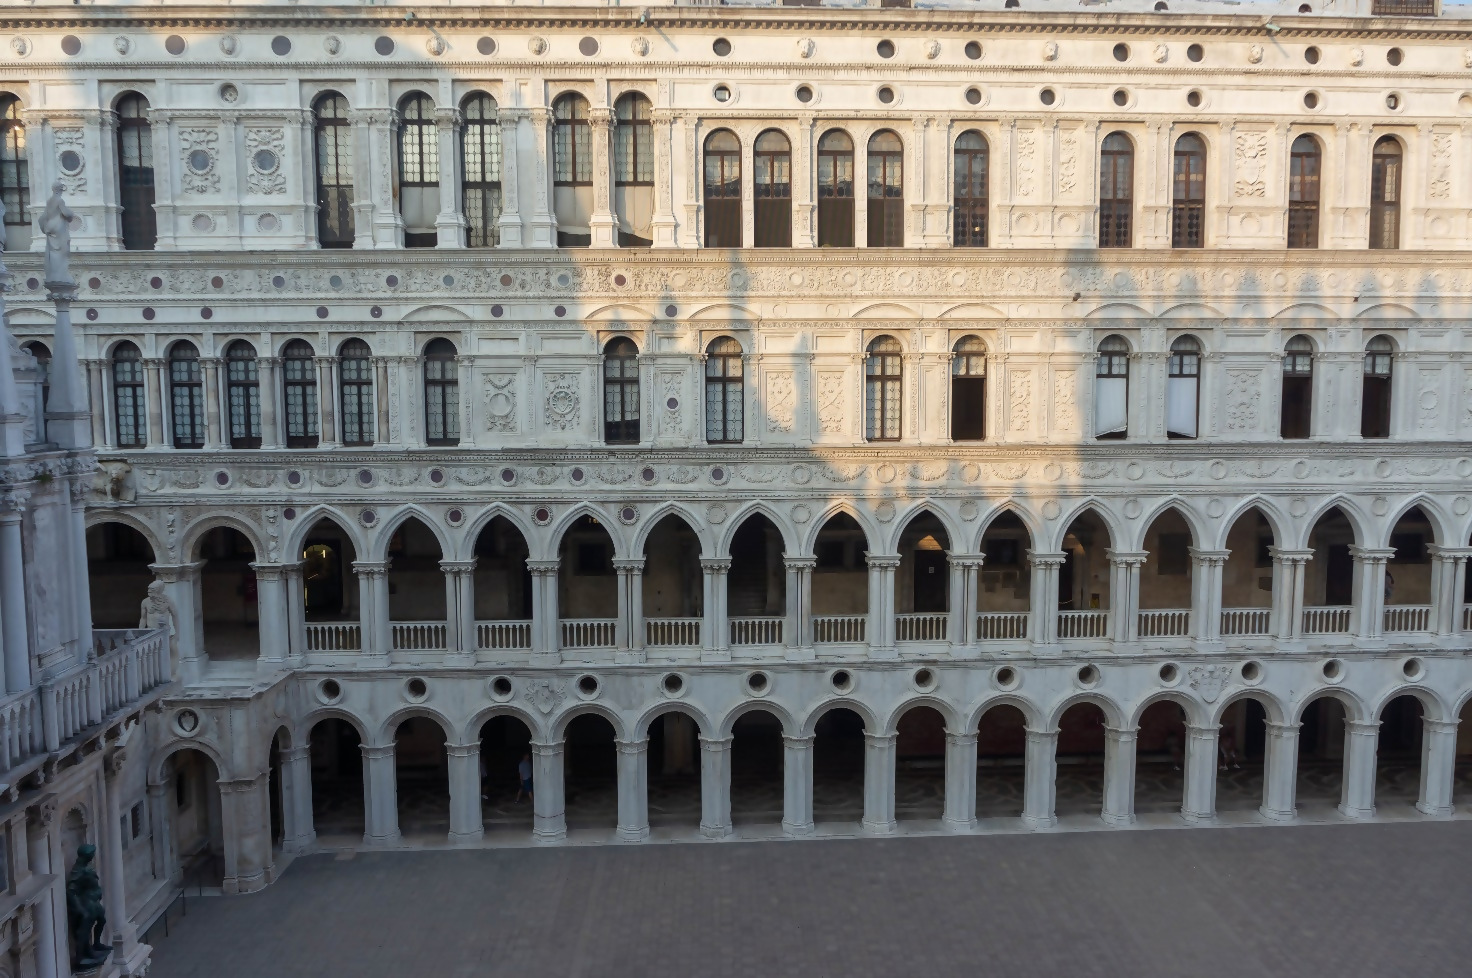 The Doge's Palace inner yard